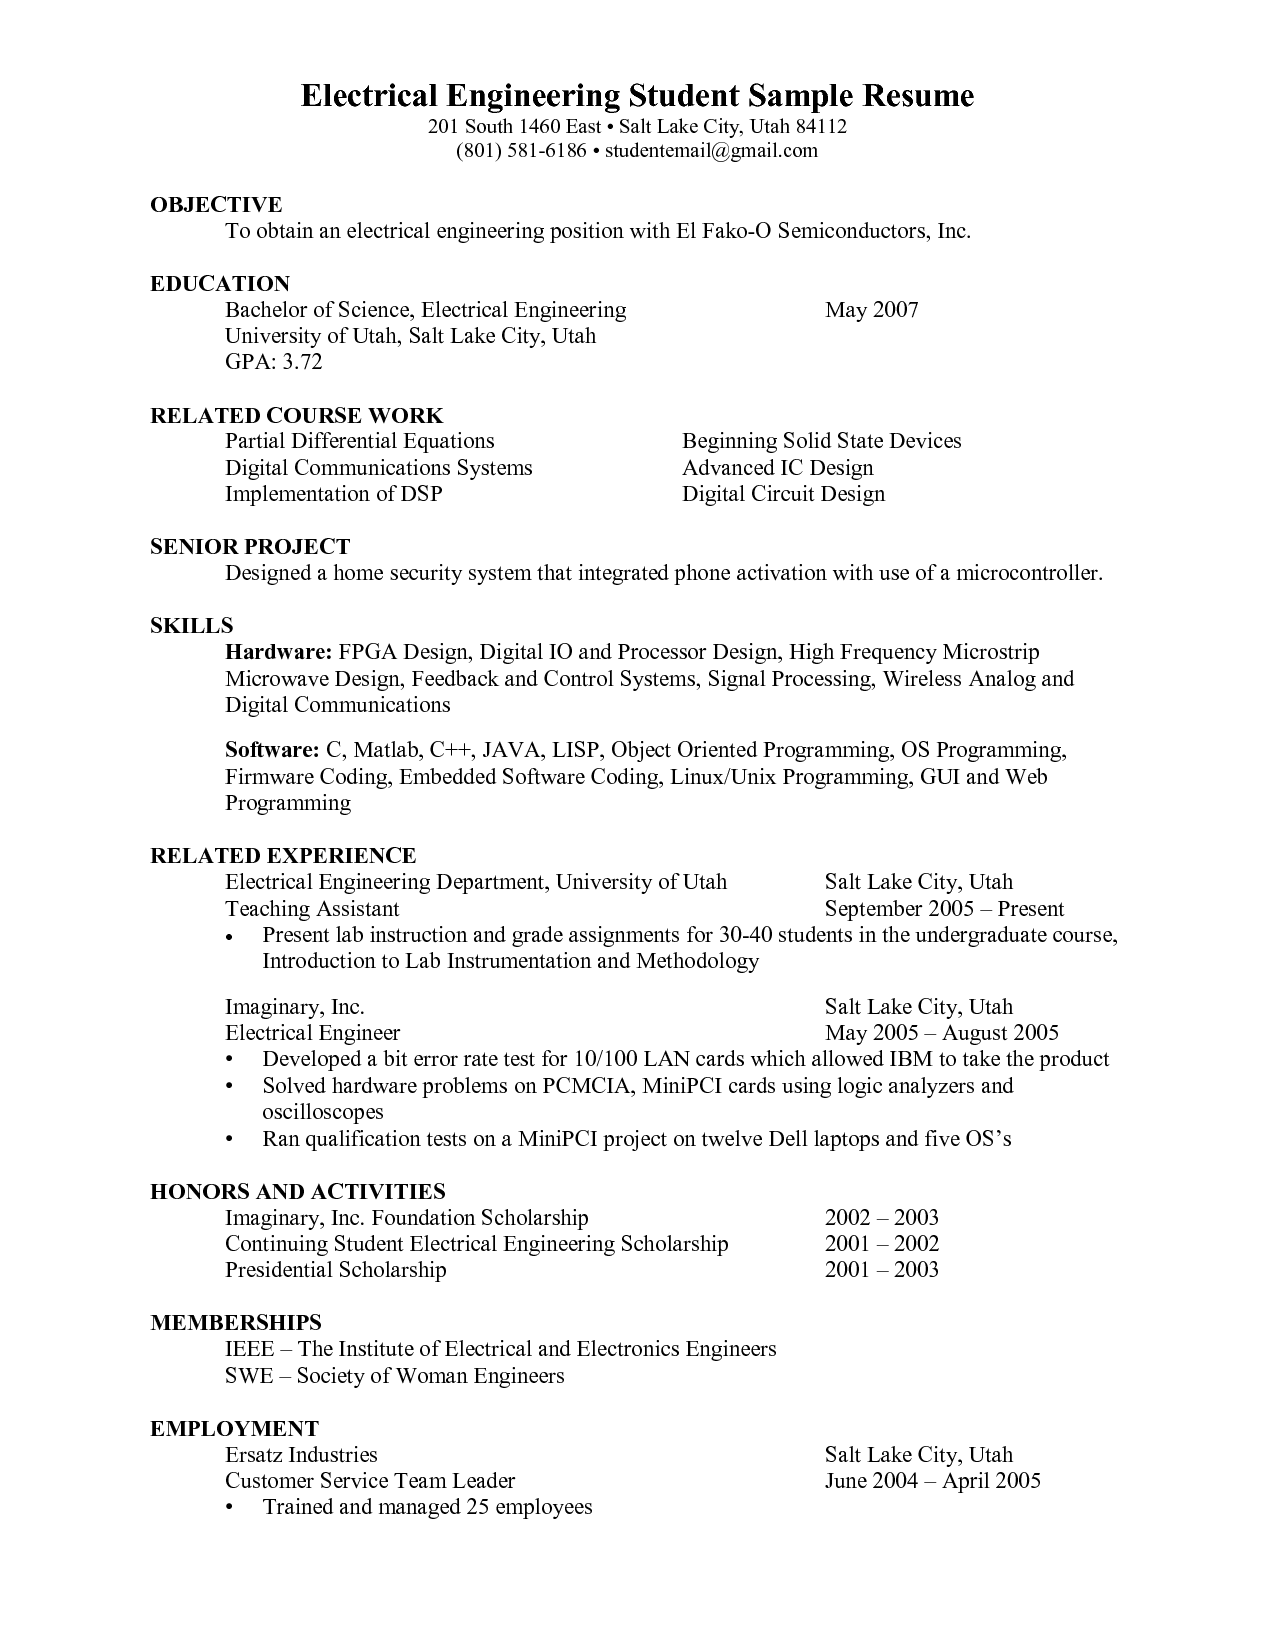 Pin By Resumejob On Resume Job Pinterest Sample Resume Resume